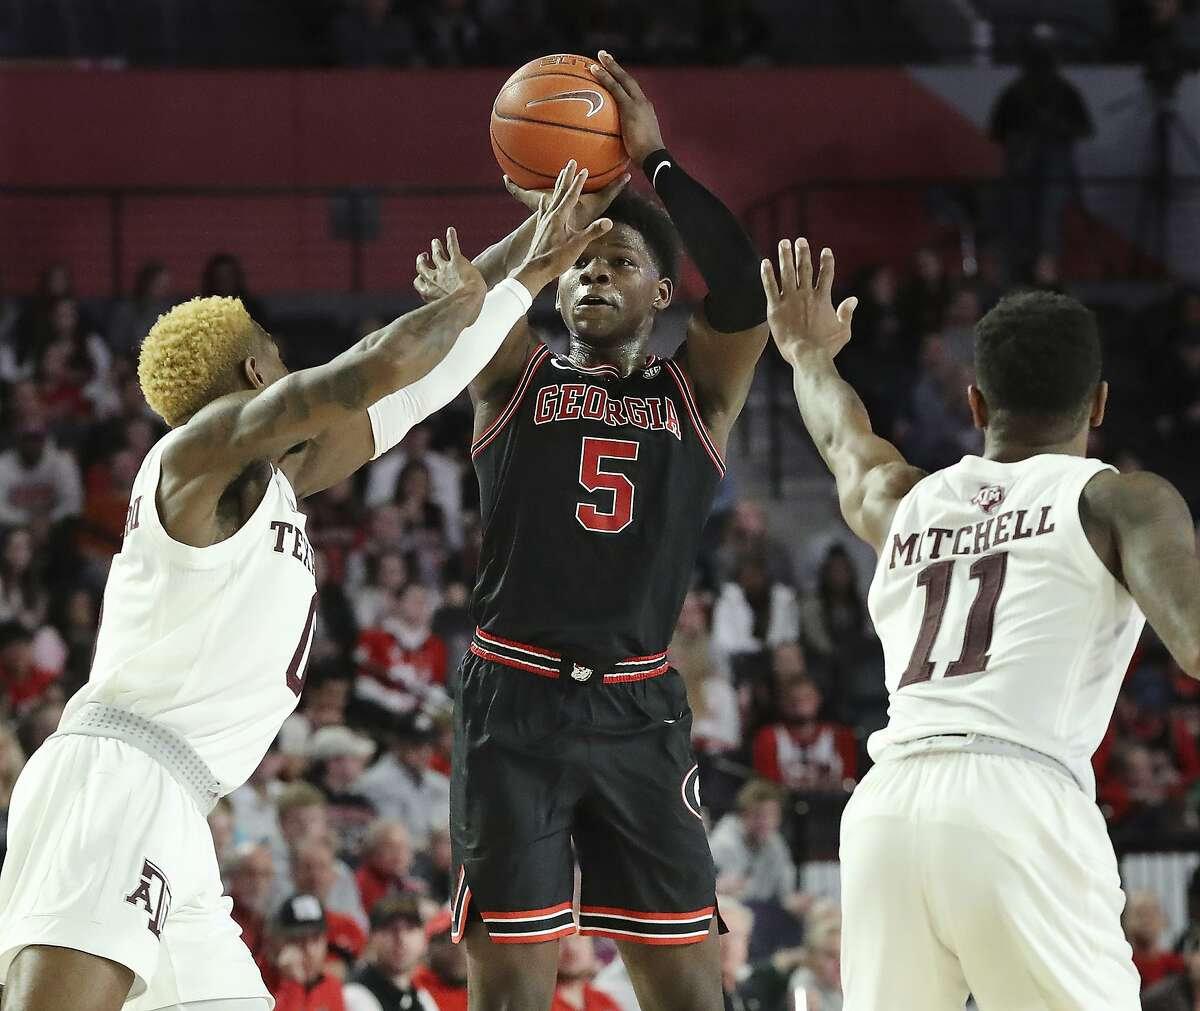 Georgia guard Anthony Edwards shoots over a double team by Texas A&M defenders Jay Jay Chandler, left, and Wendell Mitchell (11) during the first half of an NCAA college basketball game, Saturday, Feb. 1, 2020, in Athens. (Curtis Compton/Atlanta Journal-Constitution via AP)